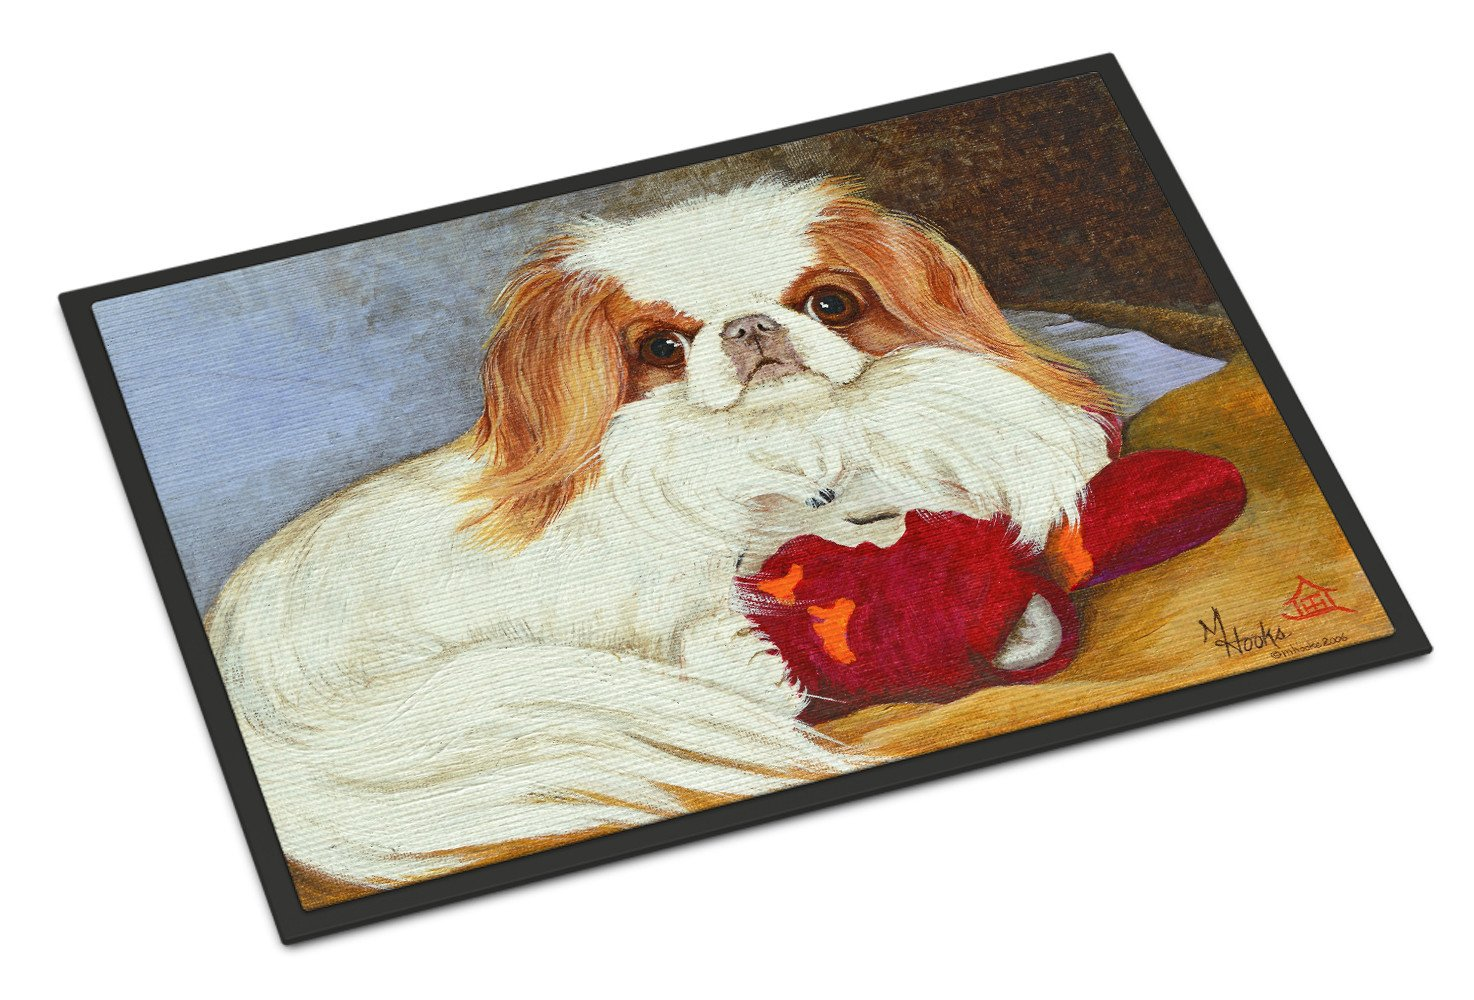 Japanese Chin Pink Gorilla Indoor or Outdoor Mat 24x36 MH1049JMAT - the-store.com